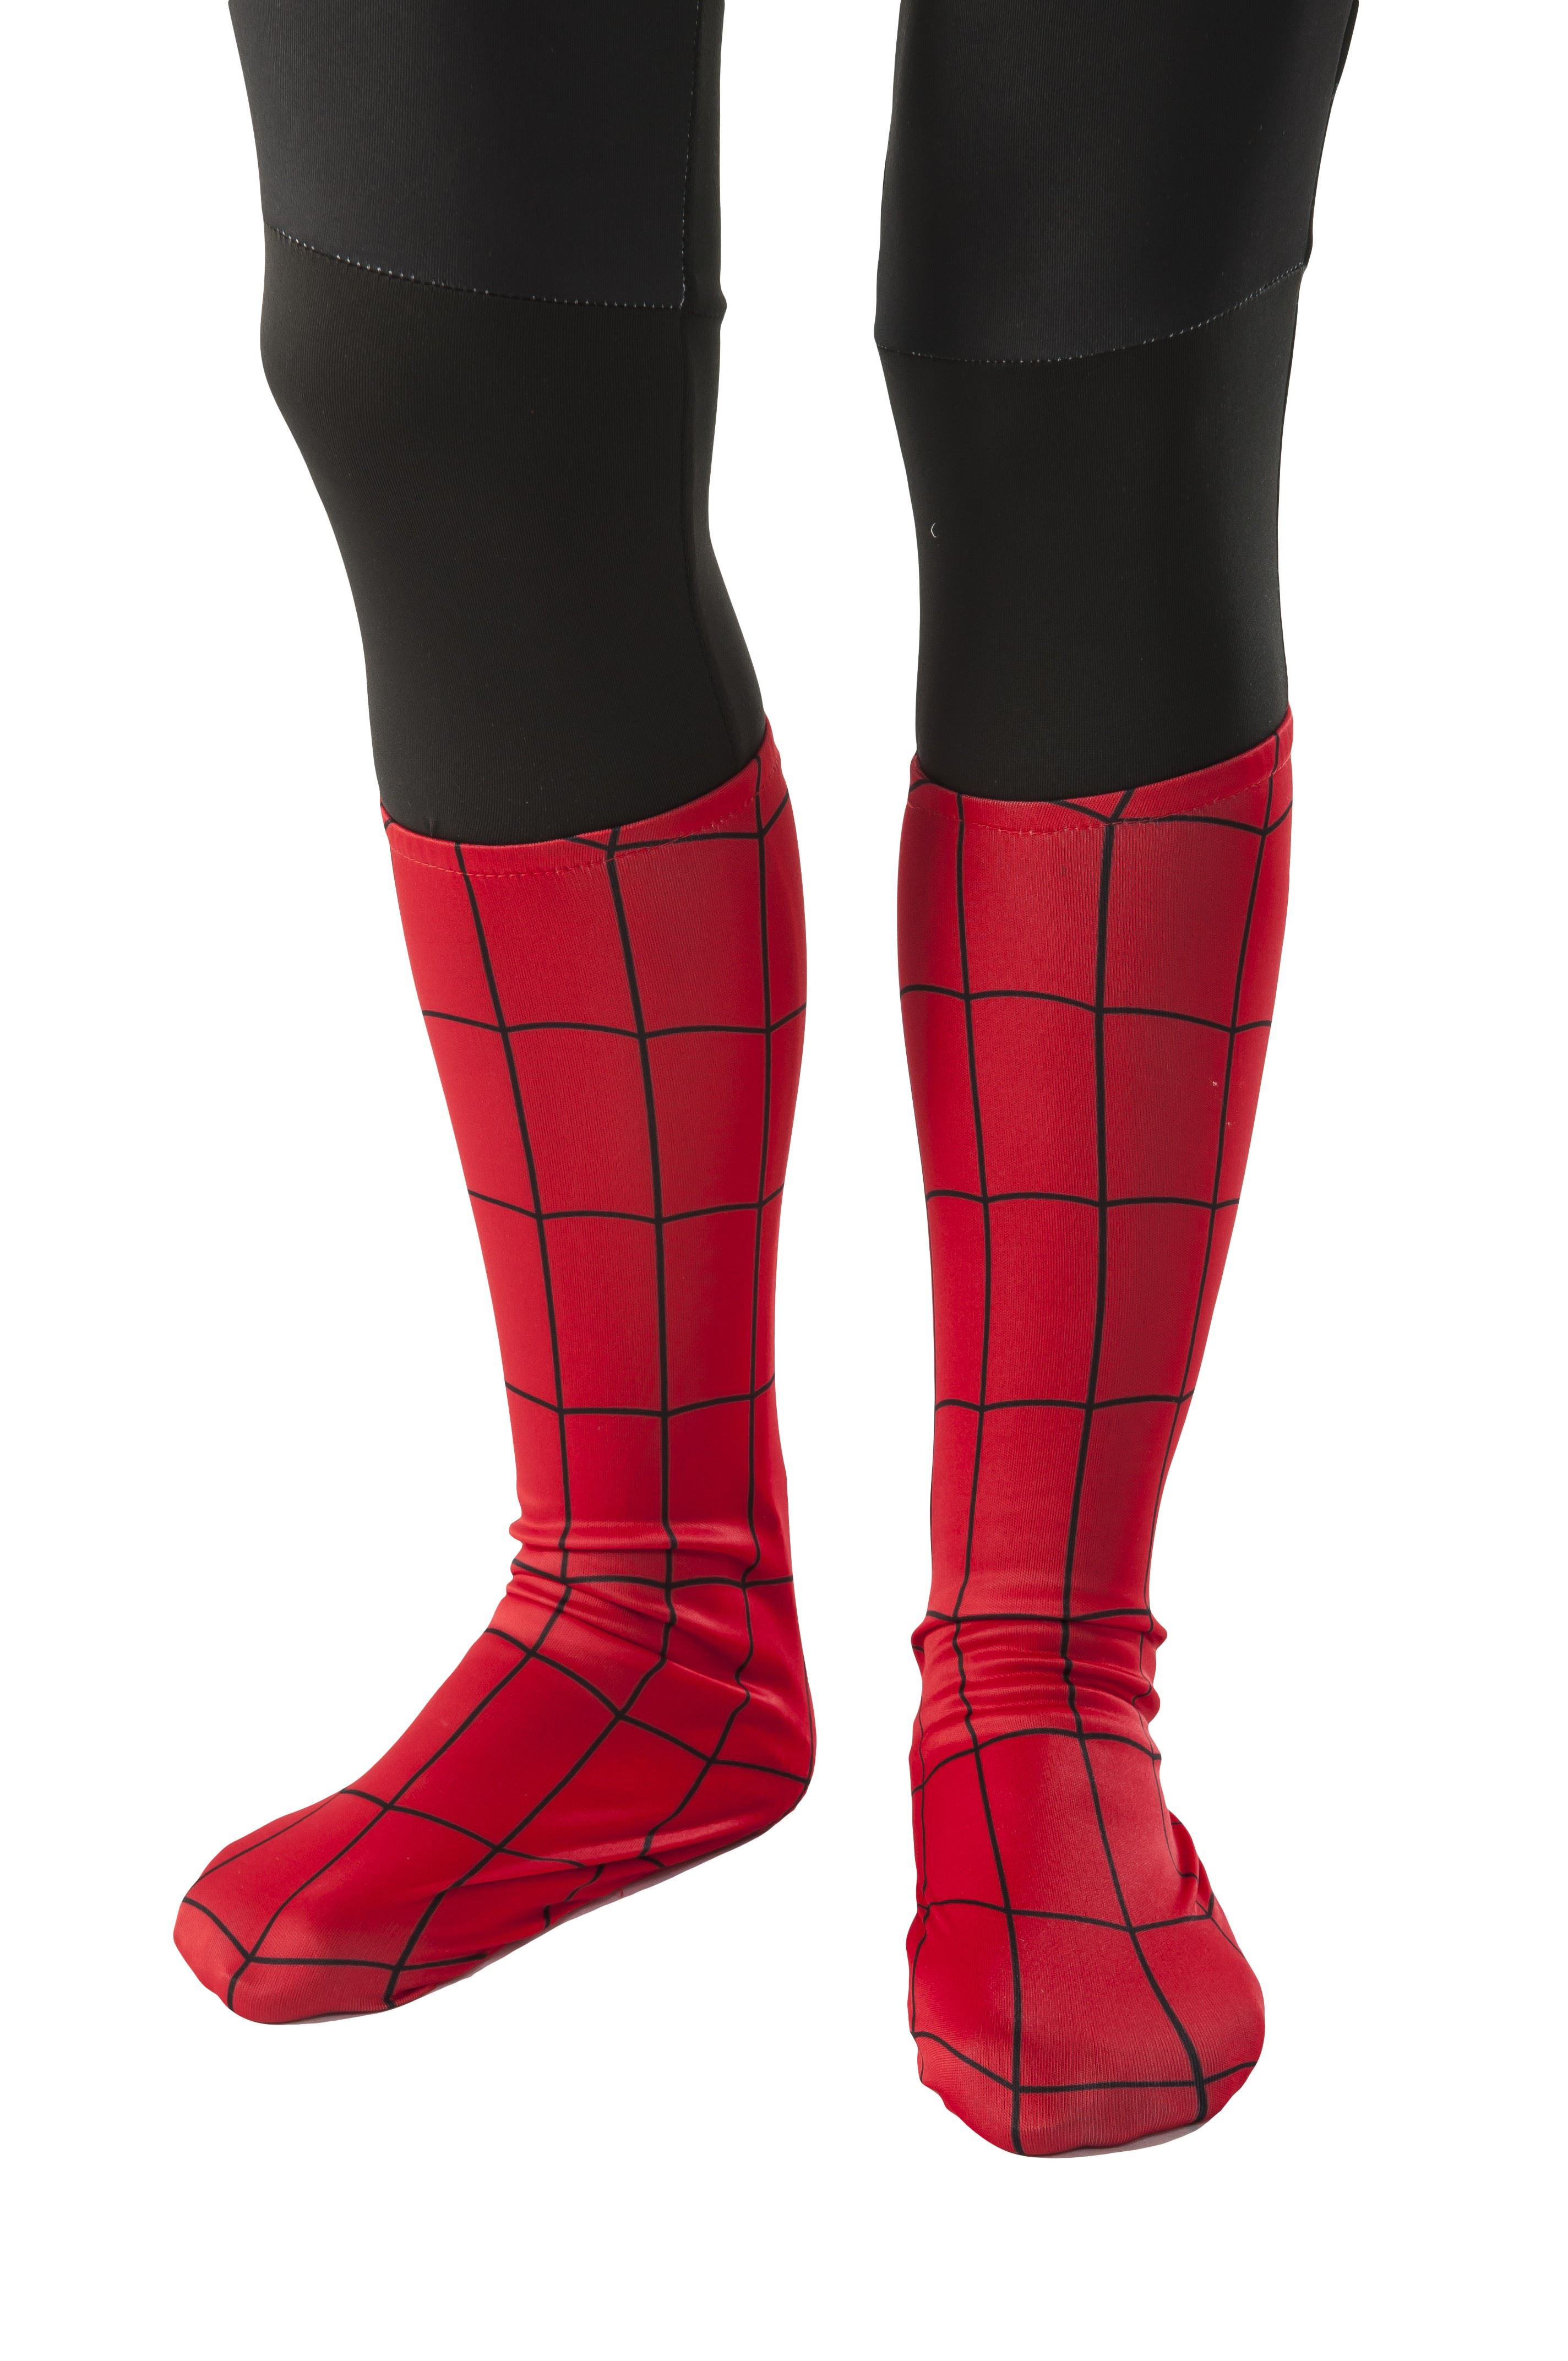 Kids Spider Man Boot Covers 999 The Costume Land